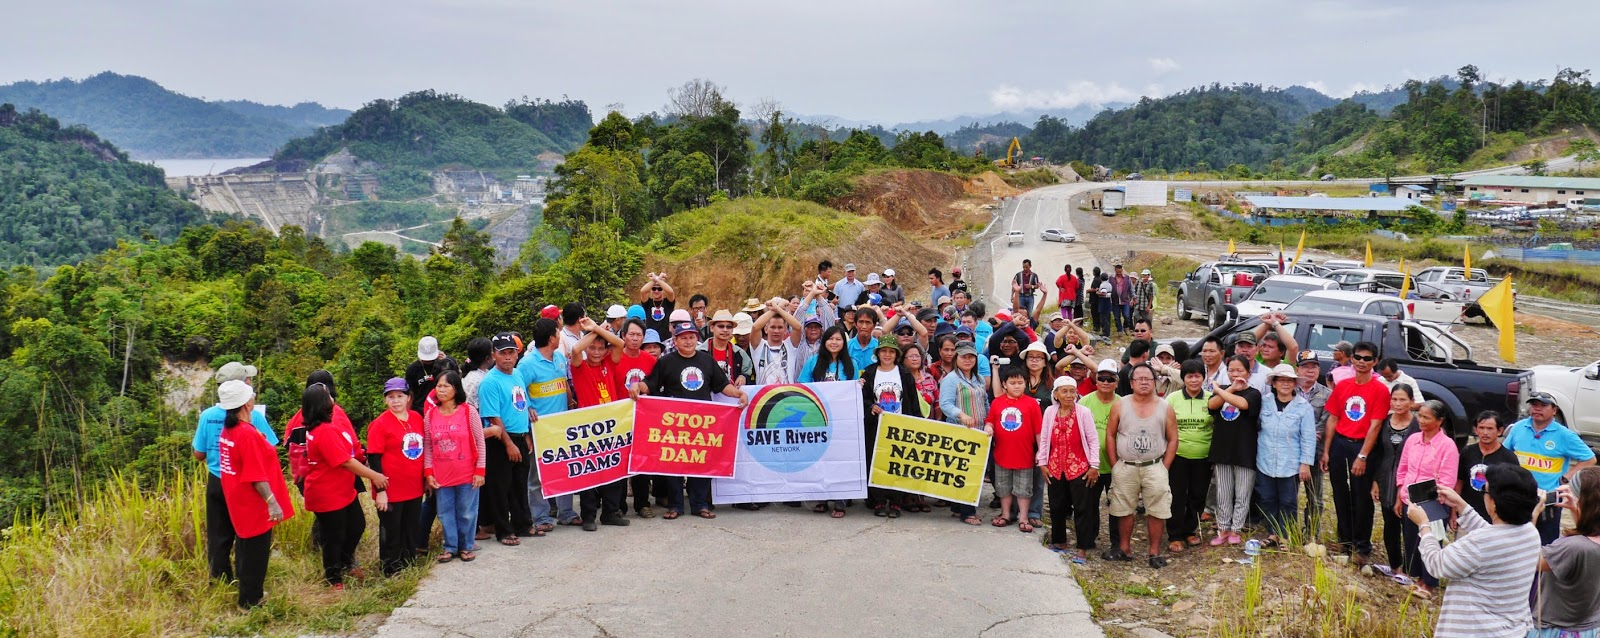 Locals seen protesting against the plan by the Sarawak government to build the Baram dam.